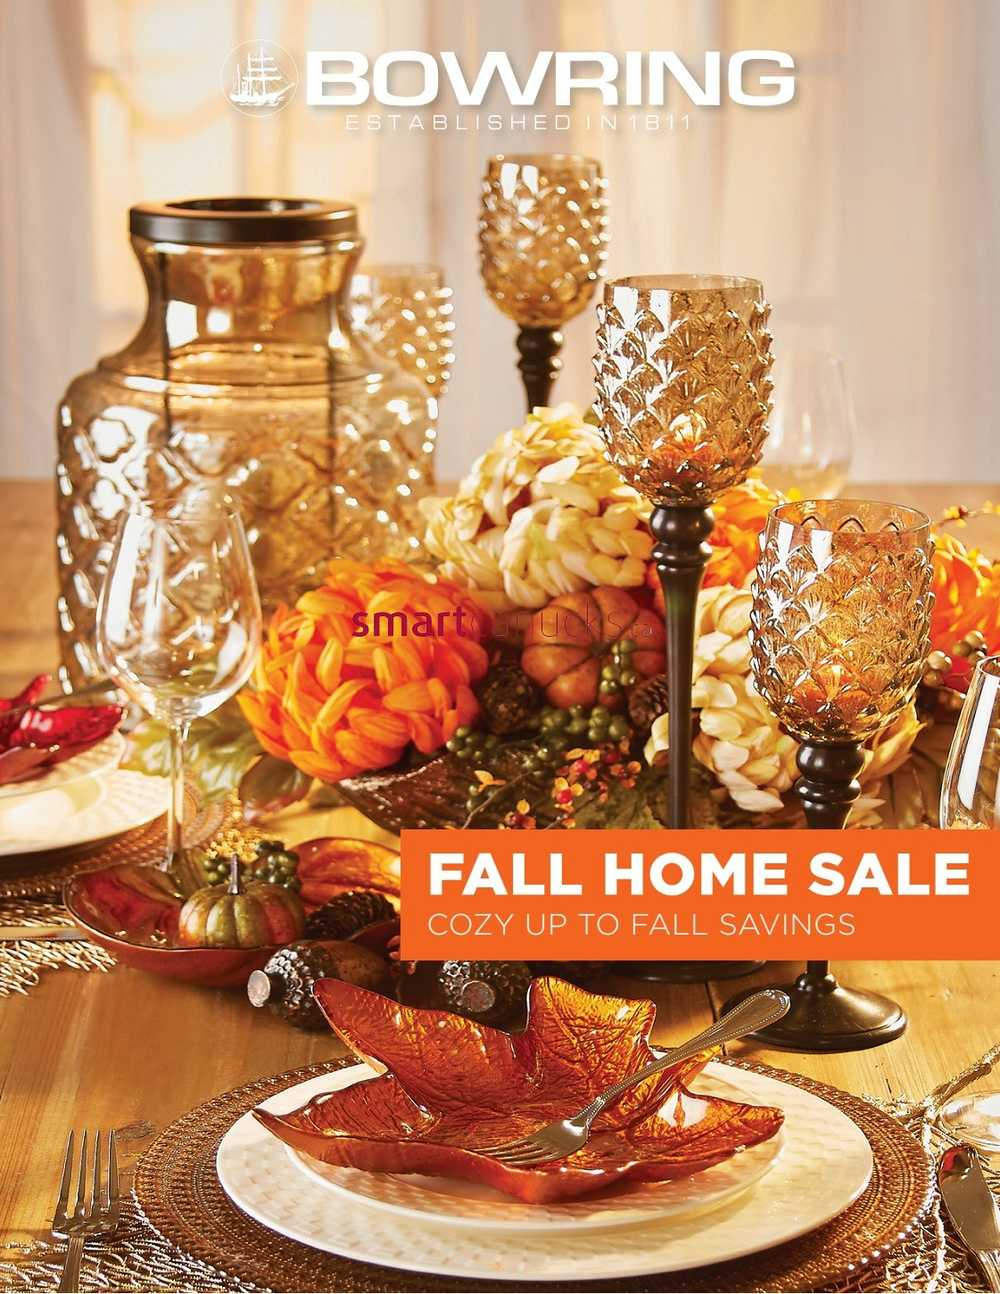 Bowring home decor 28 images 1000 images about bowring for Home decor items on sale